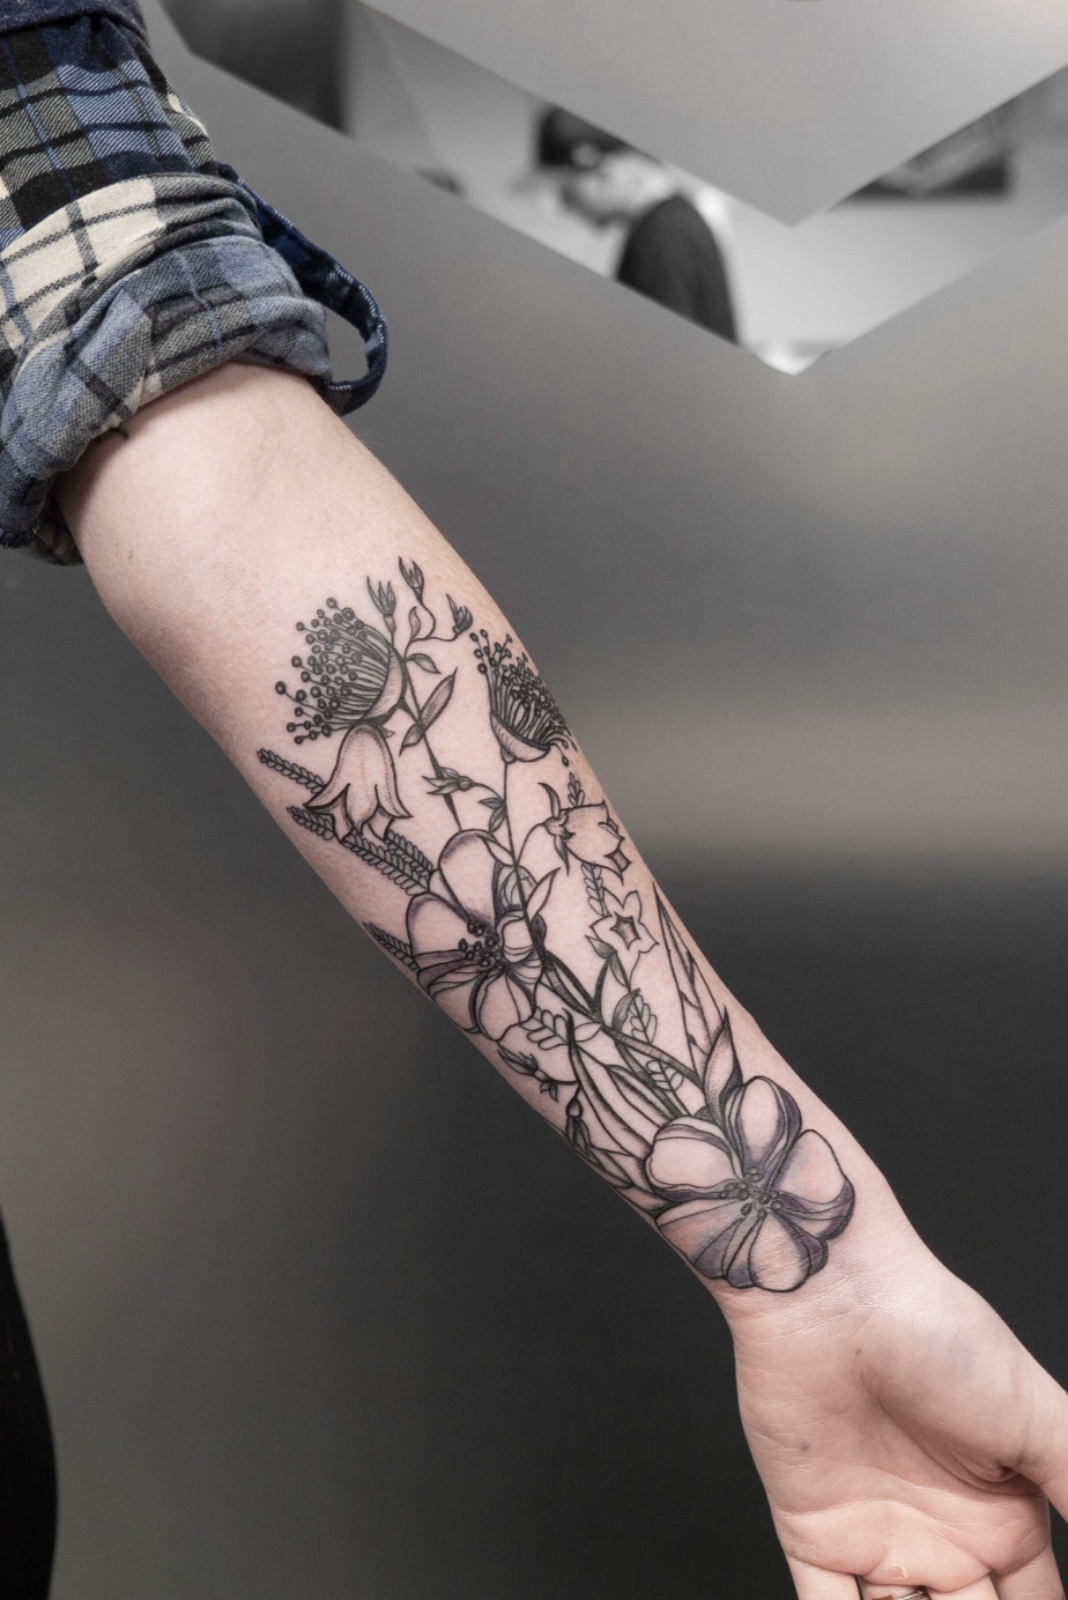 Custom Black and Grey Wild Flowers Tattoo by Danielle at Certified Tattoo Studios Denver Co.jpg